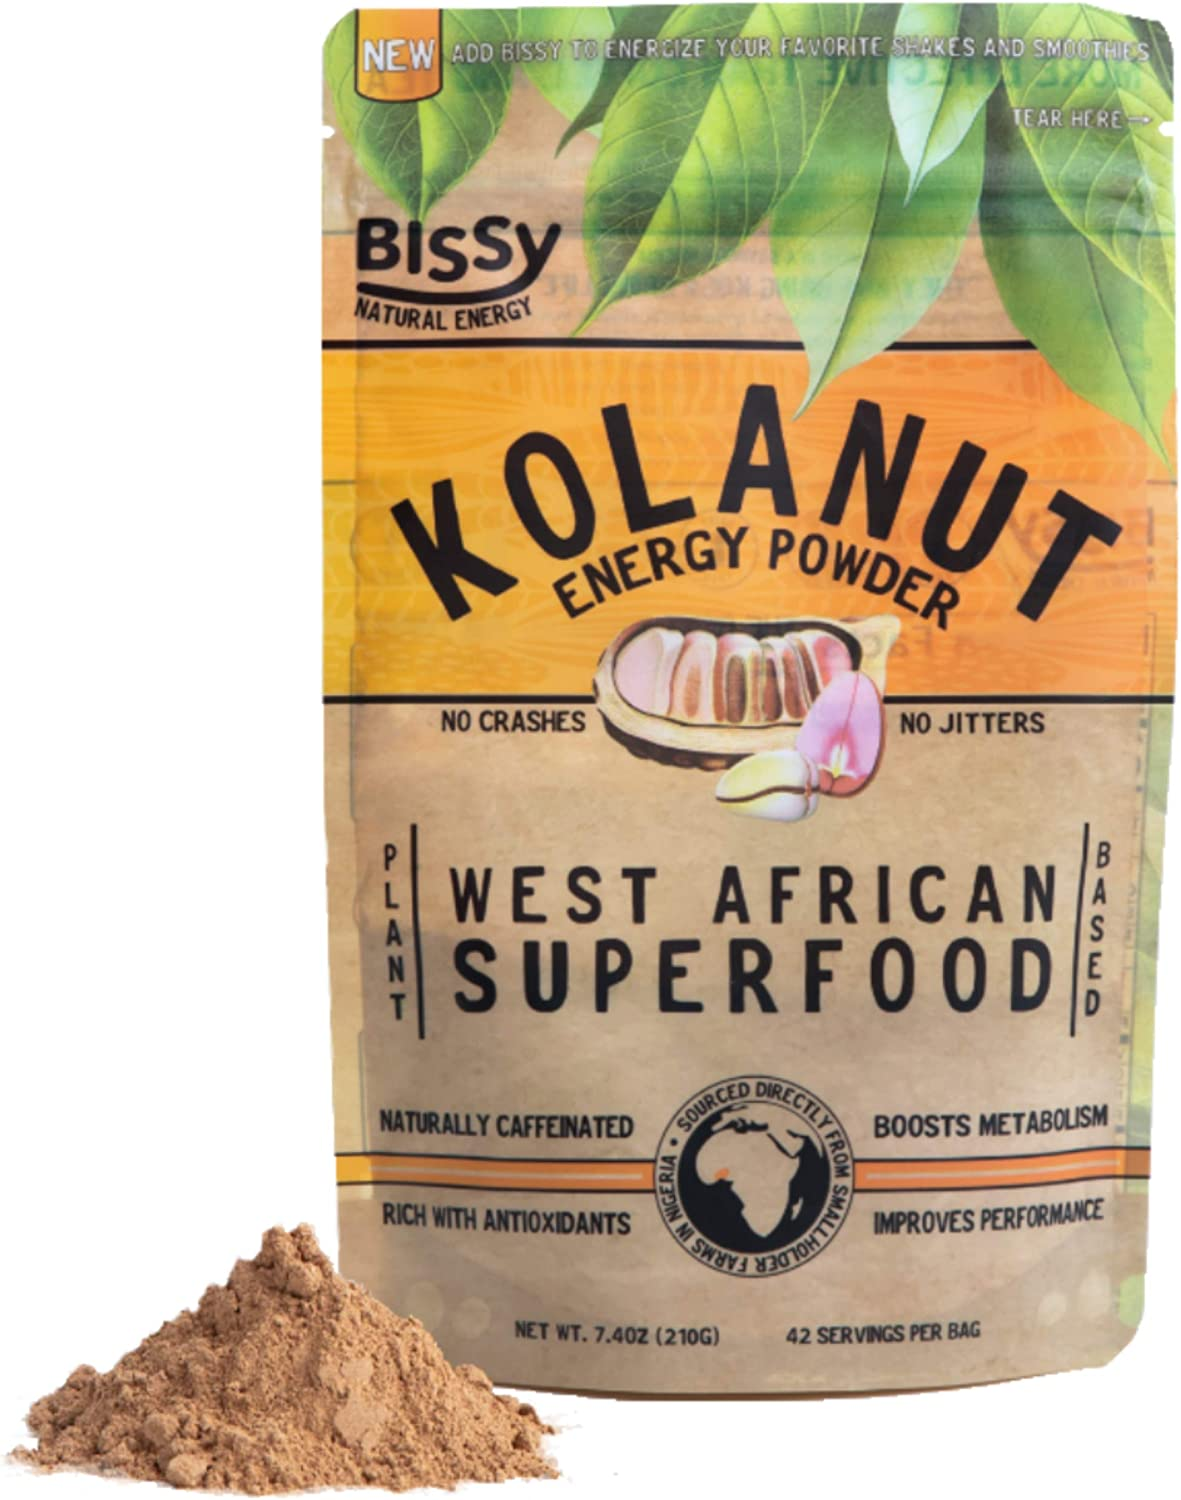 Natural Kola Nut Energy Powder | More Effective Than Coffee & Tea | Mixes in Smoothies, Workout Shakes & Teas | 100% Plant Based Caffeine | 7.4oz (42 Servings) | by Bissy Energy